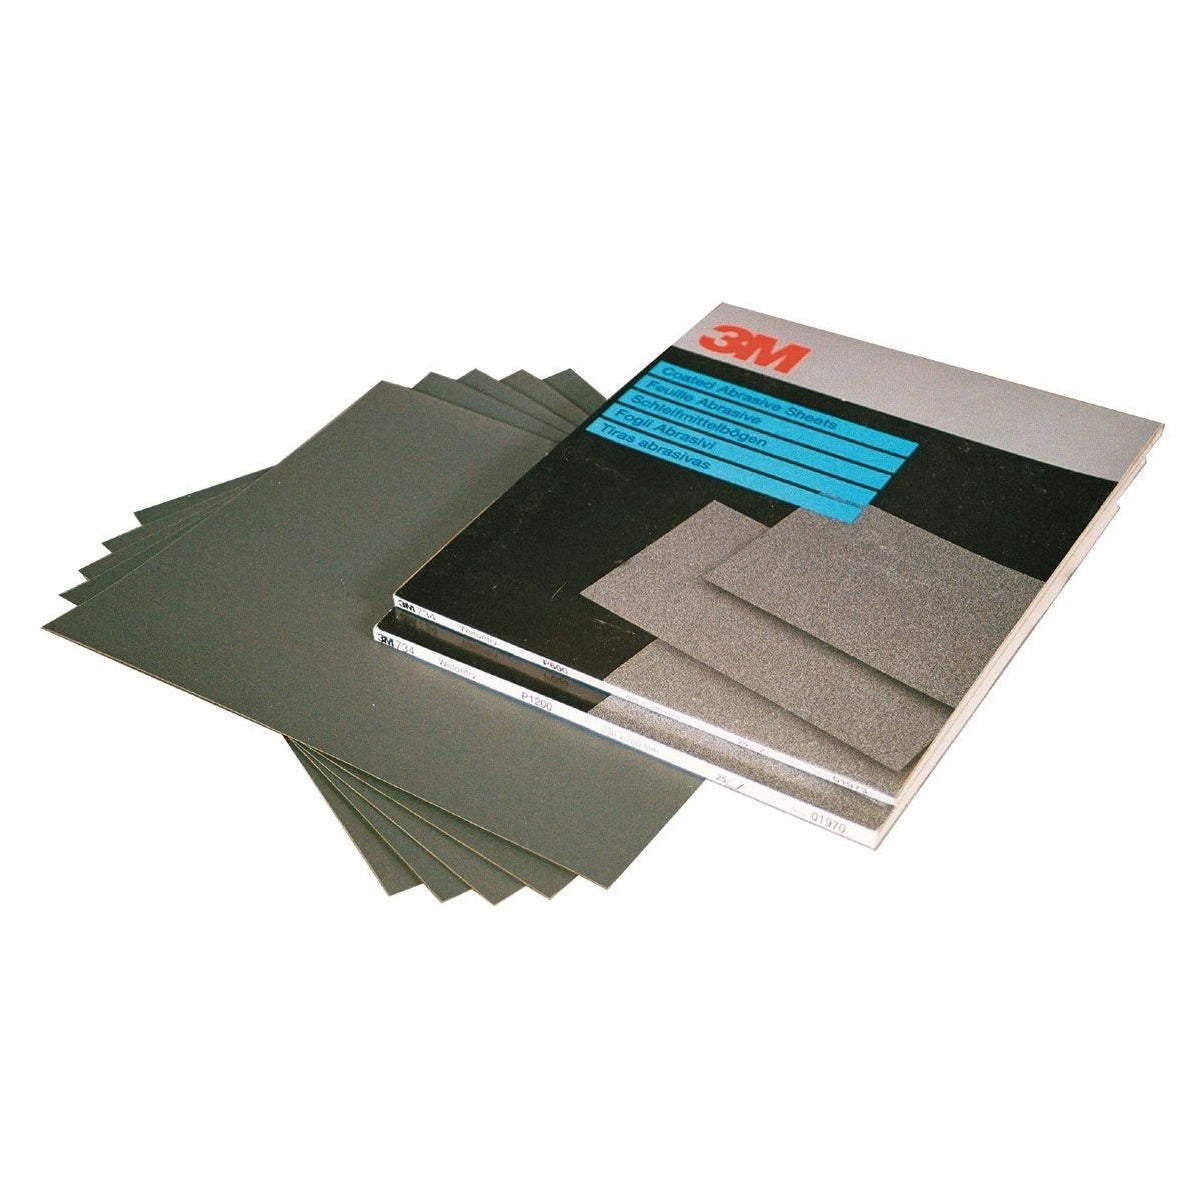 3M Wet and Dry Sandpaper 1000 Grit